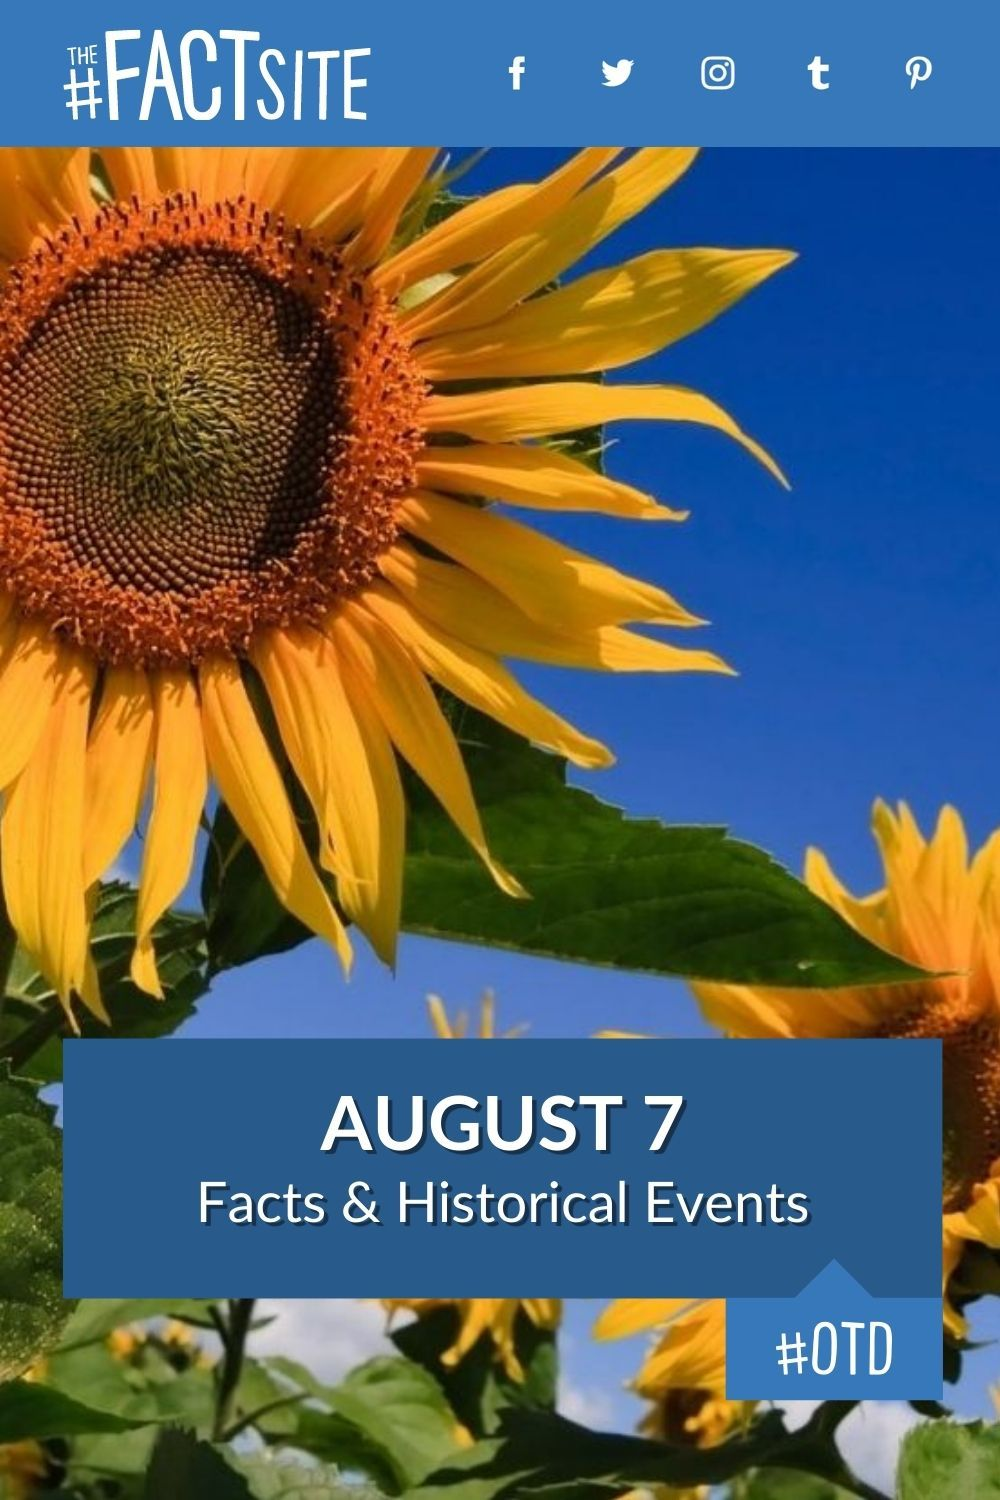 Facts & Historic Events That Happened on August 7